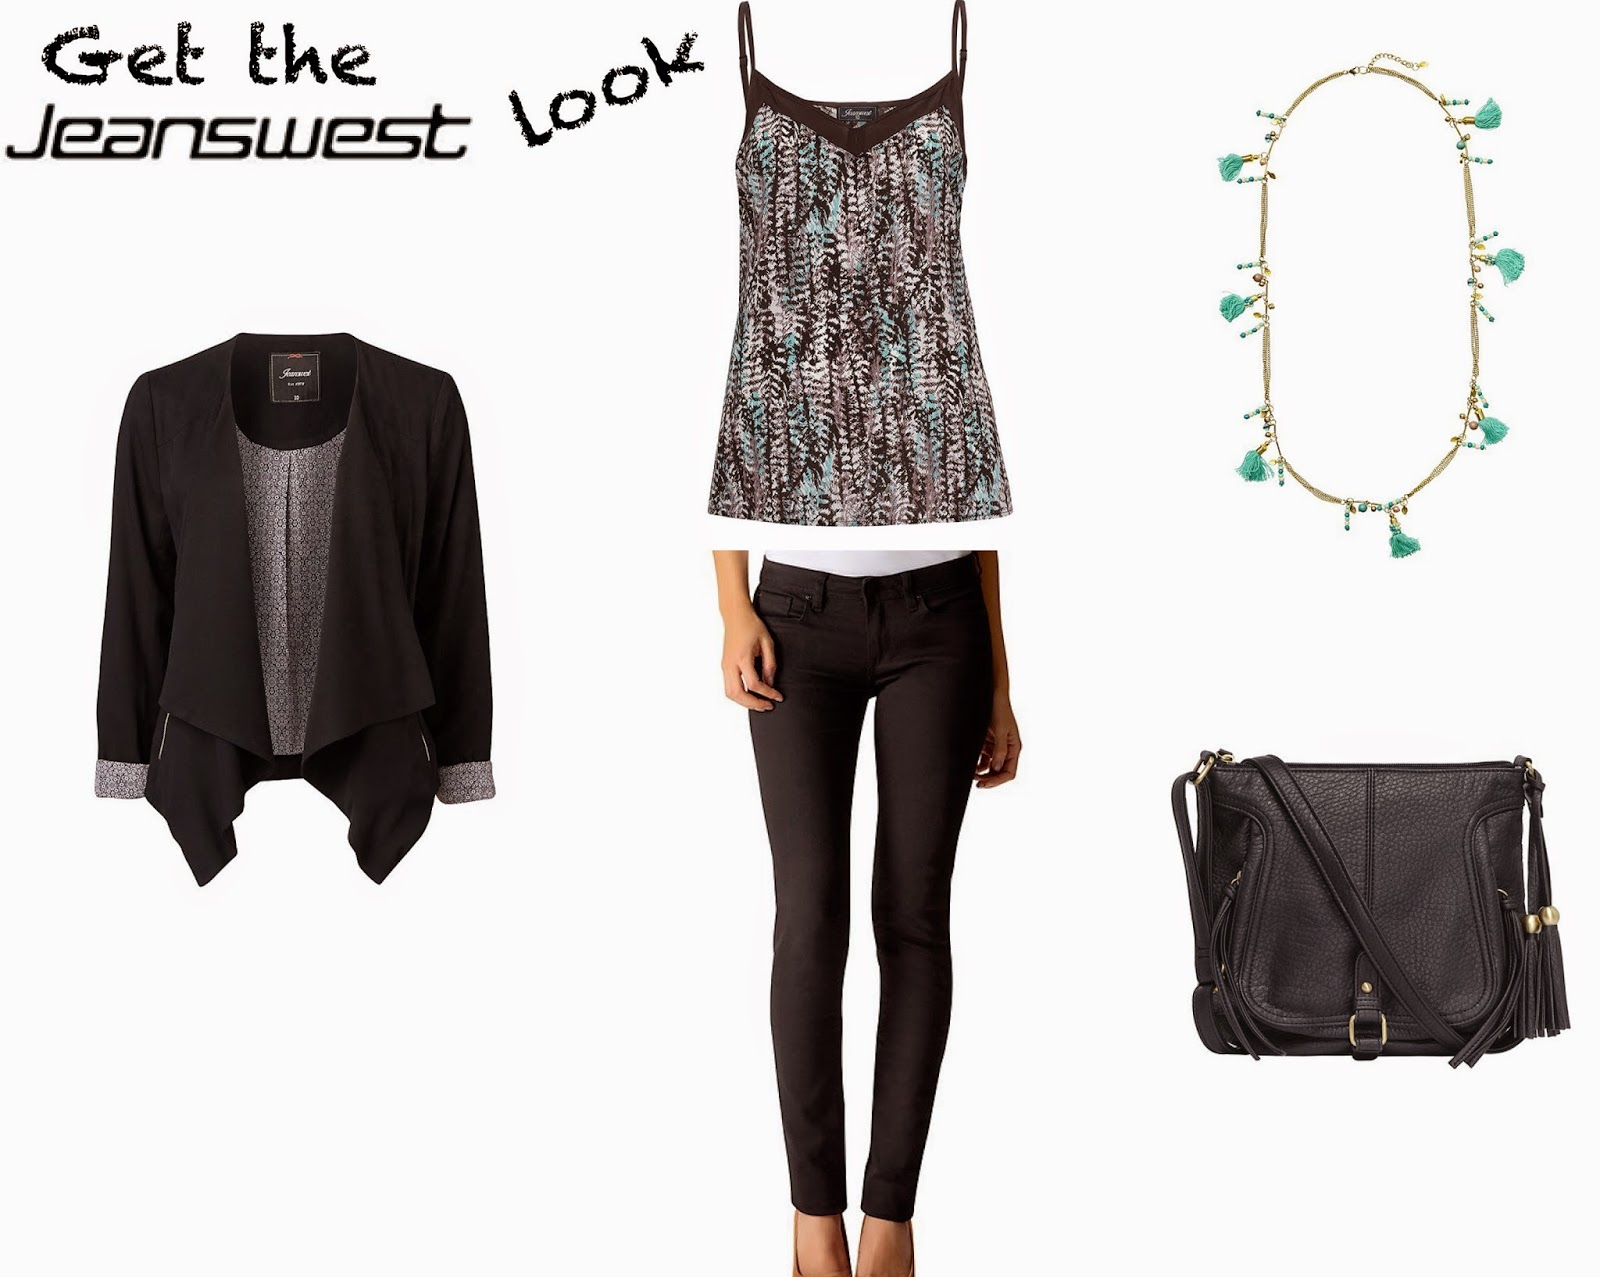 Leather jacket jeanswest